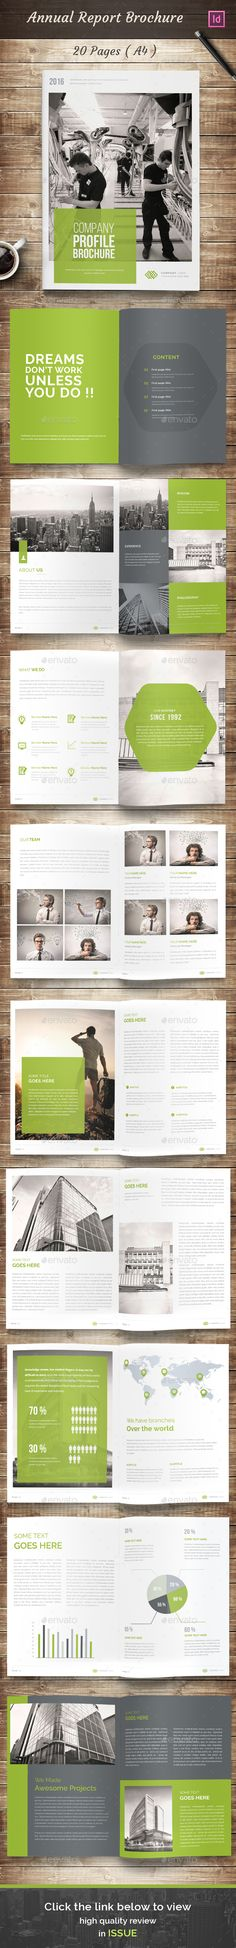 20 Pages A4 Annual Report Brochure Template InDesign INDD. Download here: http://graphicriver.net/item/annual-report-brochure/15487461?ref=ksioks